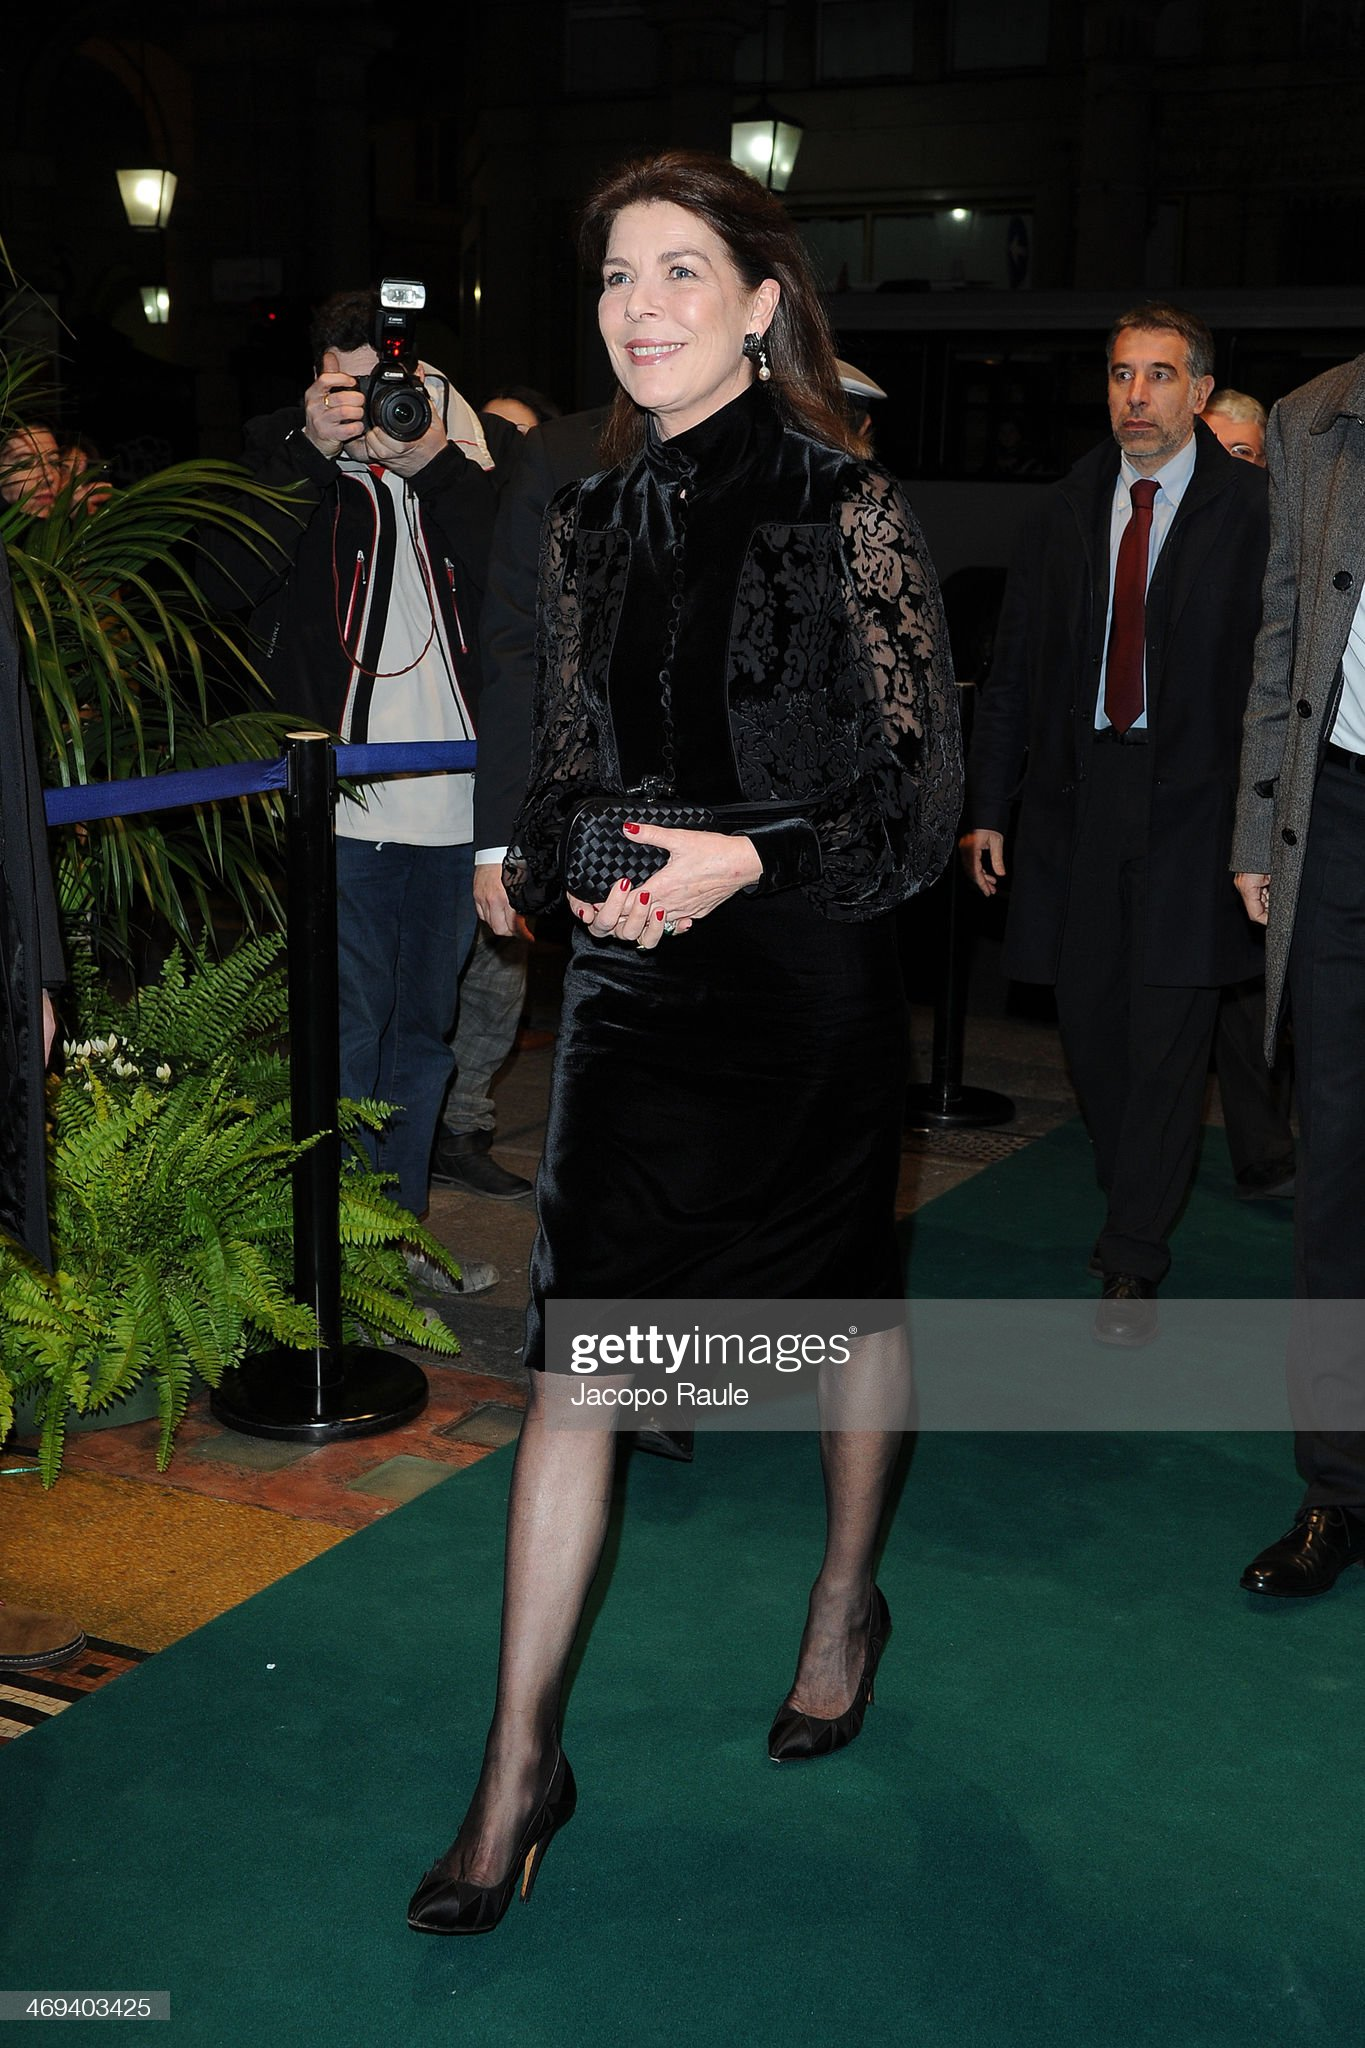 Princess Caroline Of Hanover Attends A Charity Dinner In Genoa - Arrivals : News Photo